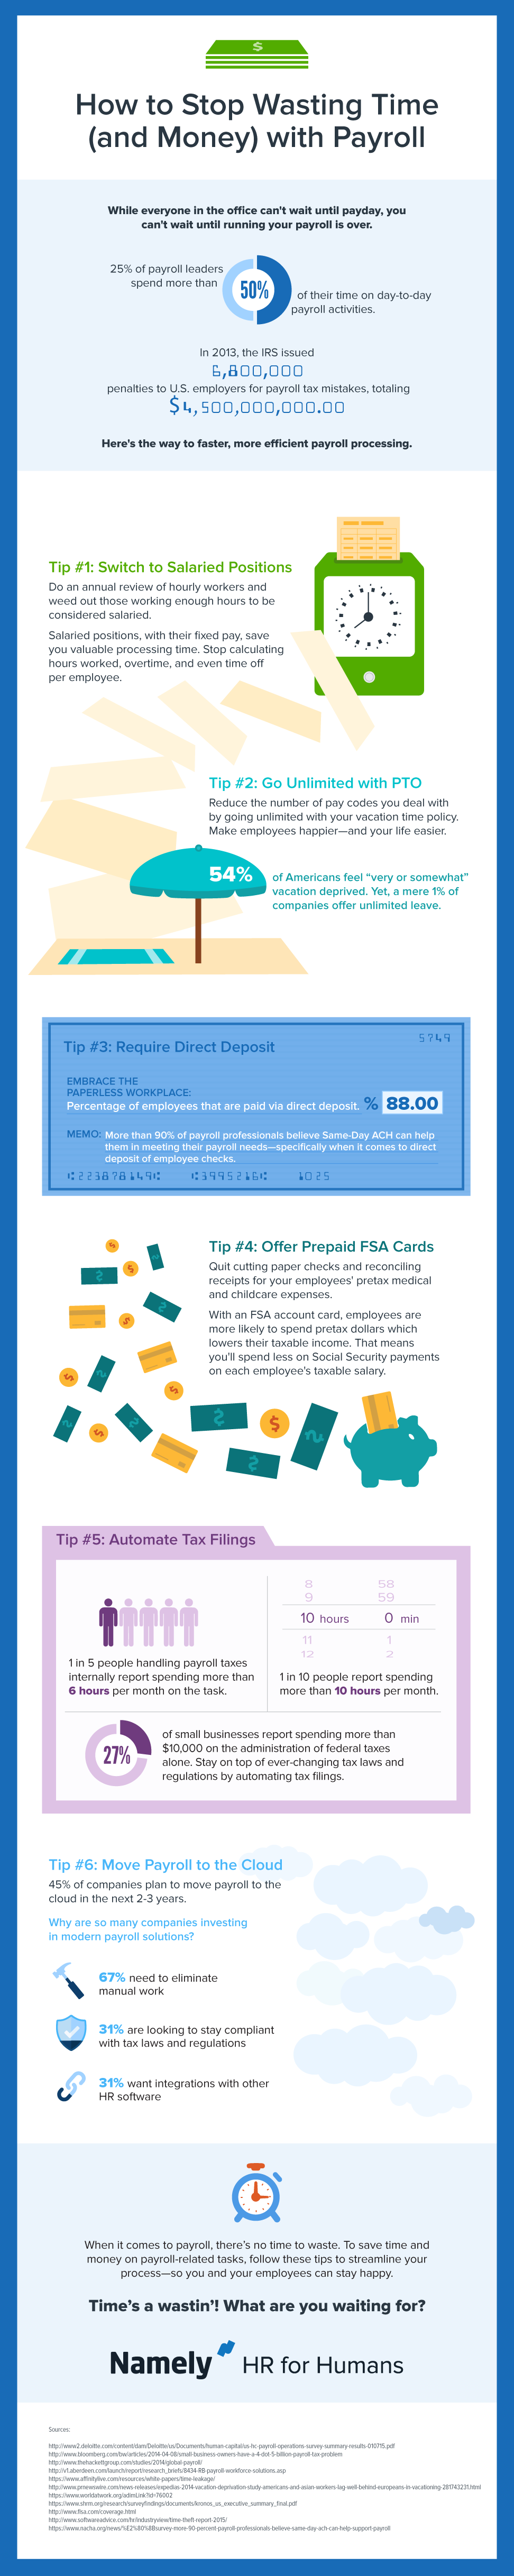 Namely-Payroll-Infographic